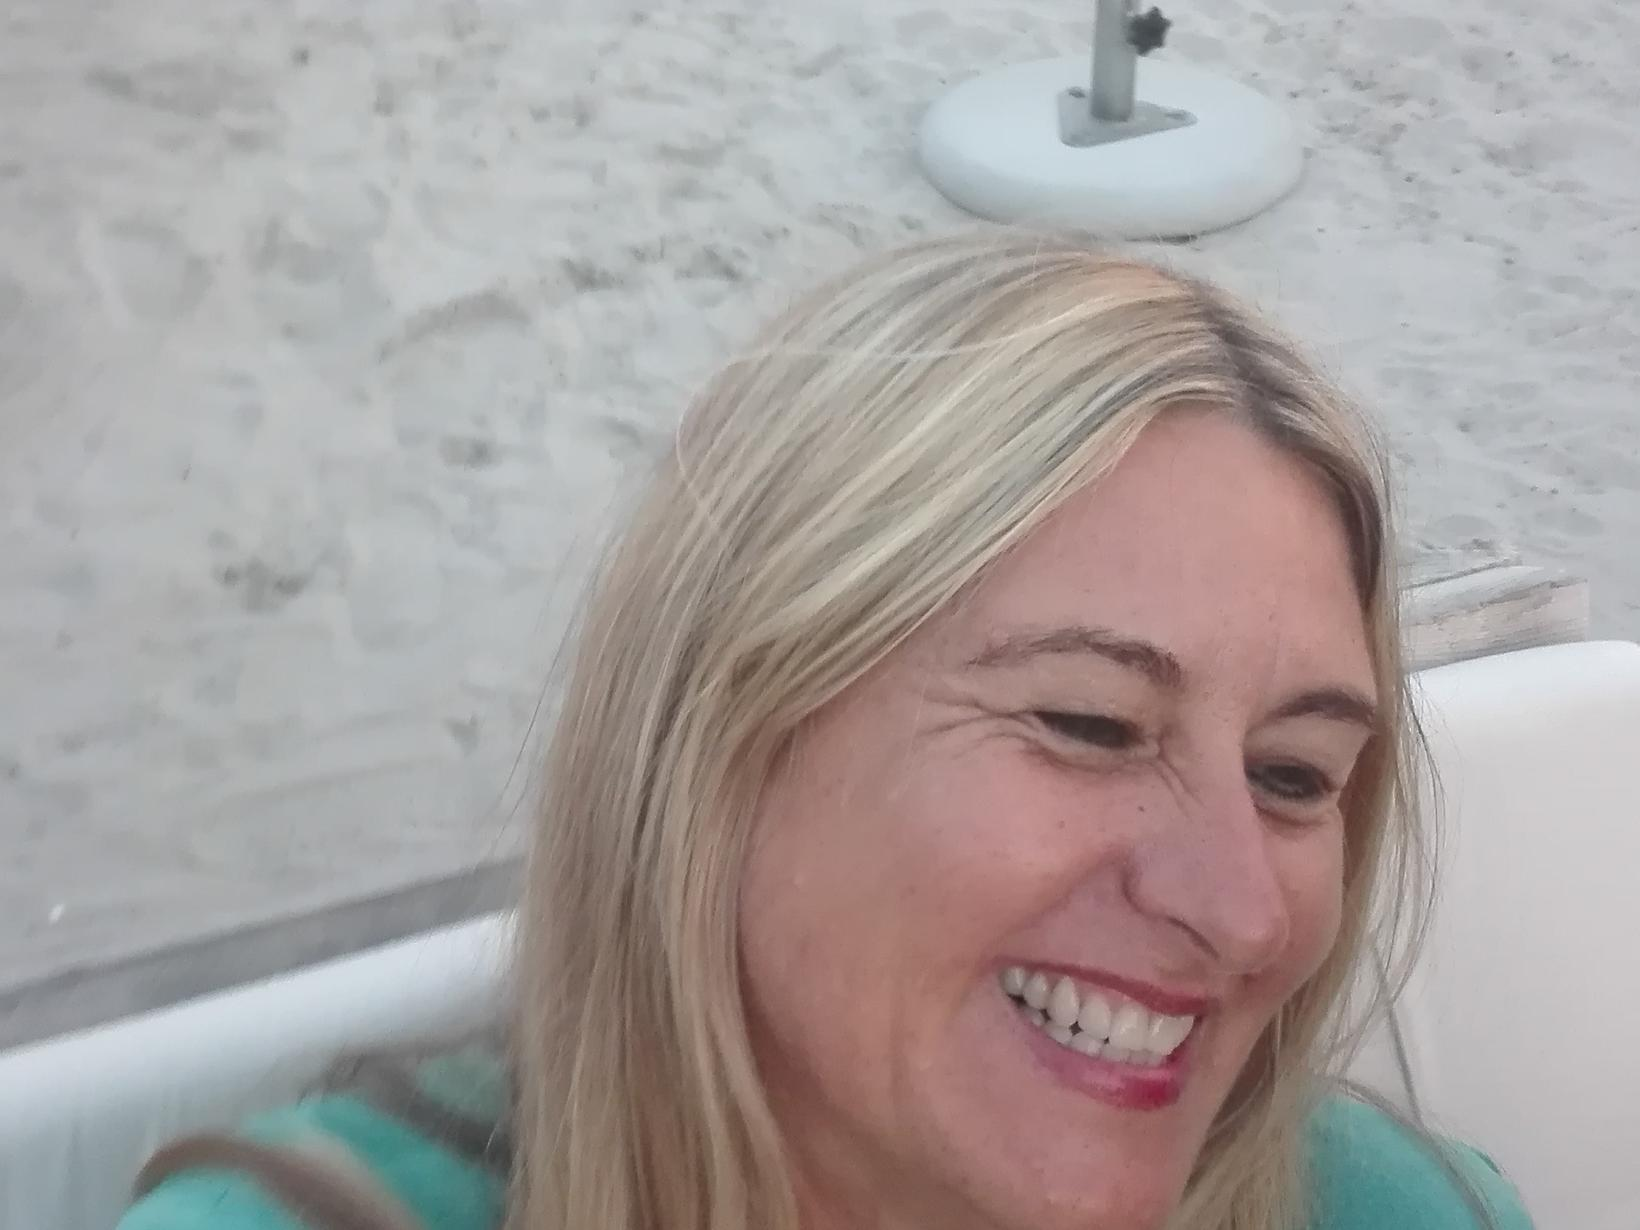 Linda from Cape Town, South Africa